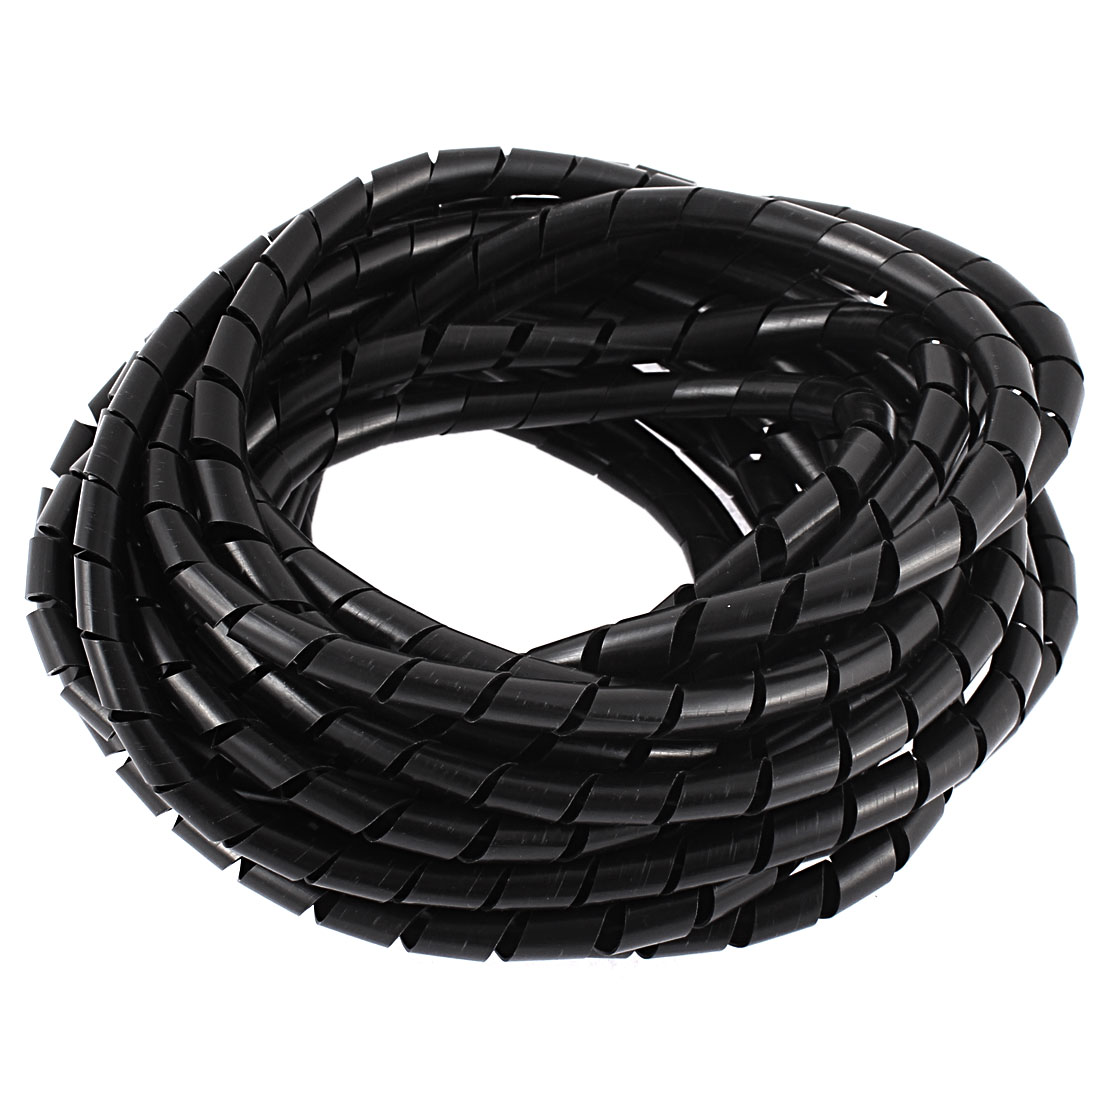 8Meters 25ft Long 8mm Black Flexible Wire Spiral Wrap Sleeving Band Tube Cable Manager Protector